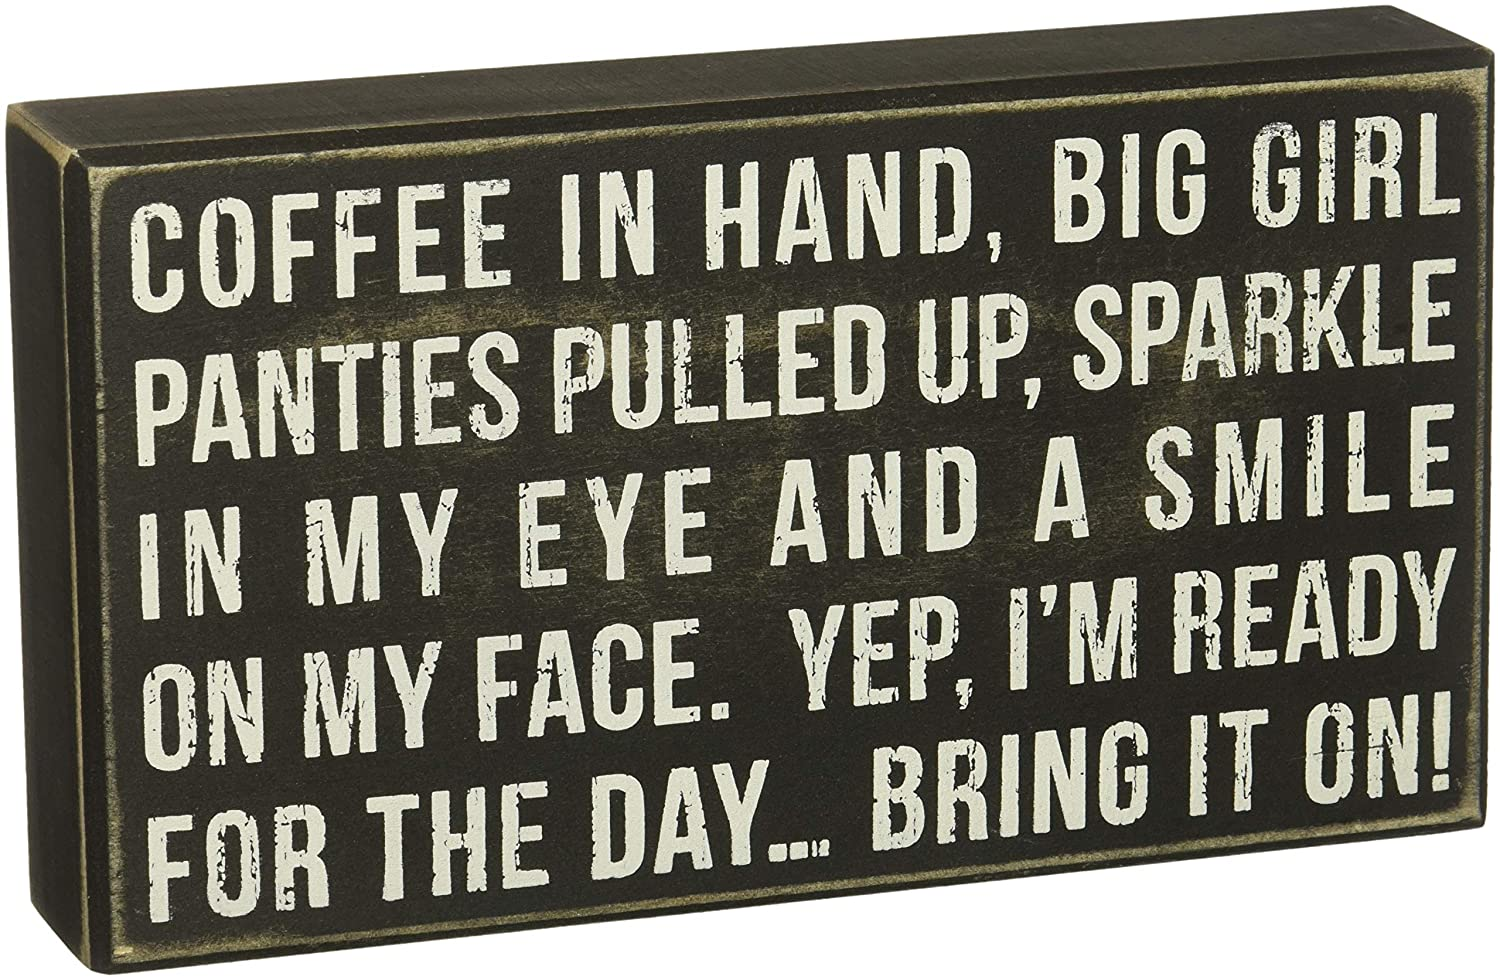 "Primitives by Kathy Box Sign, Coffee in Hand and Ready for the Day, Wood, 9"" x 5"""